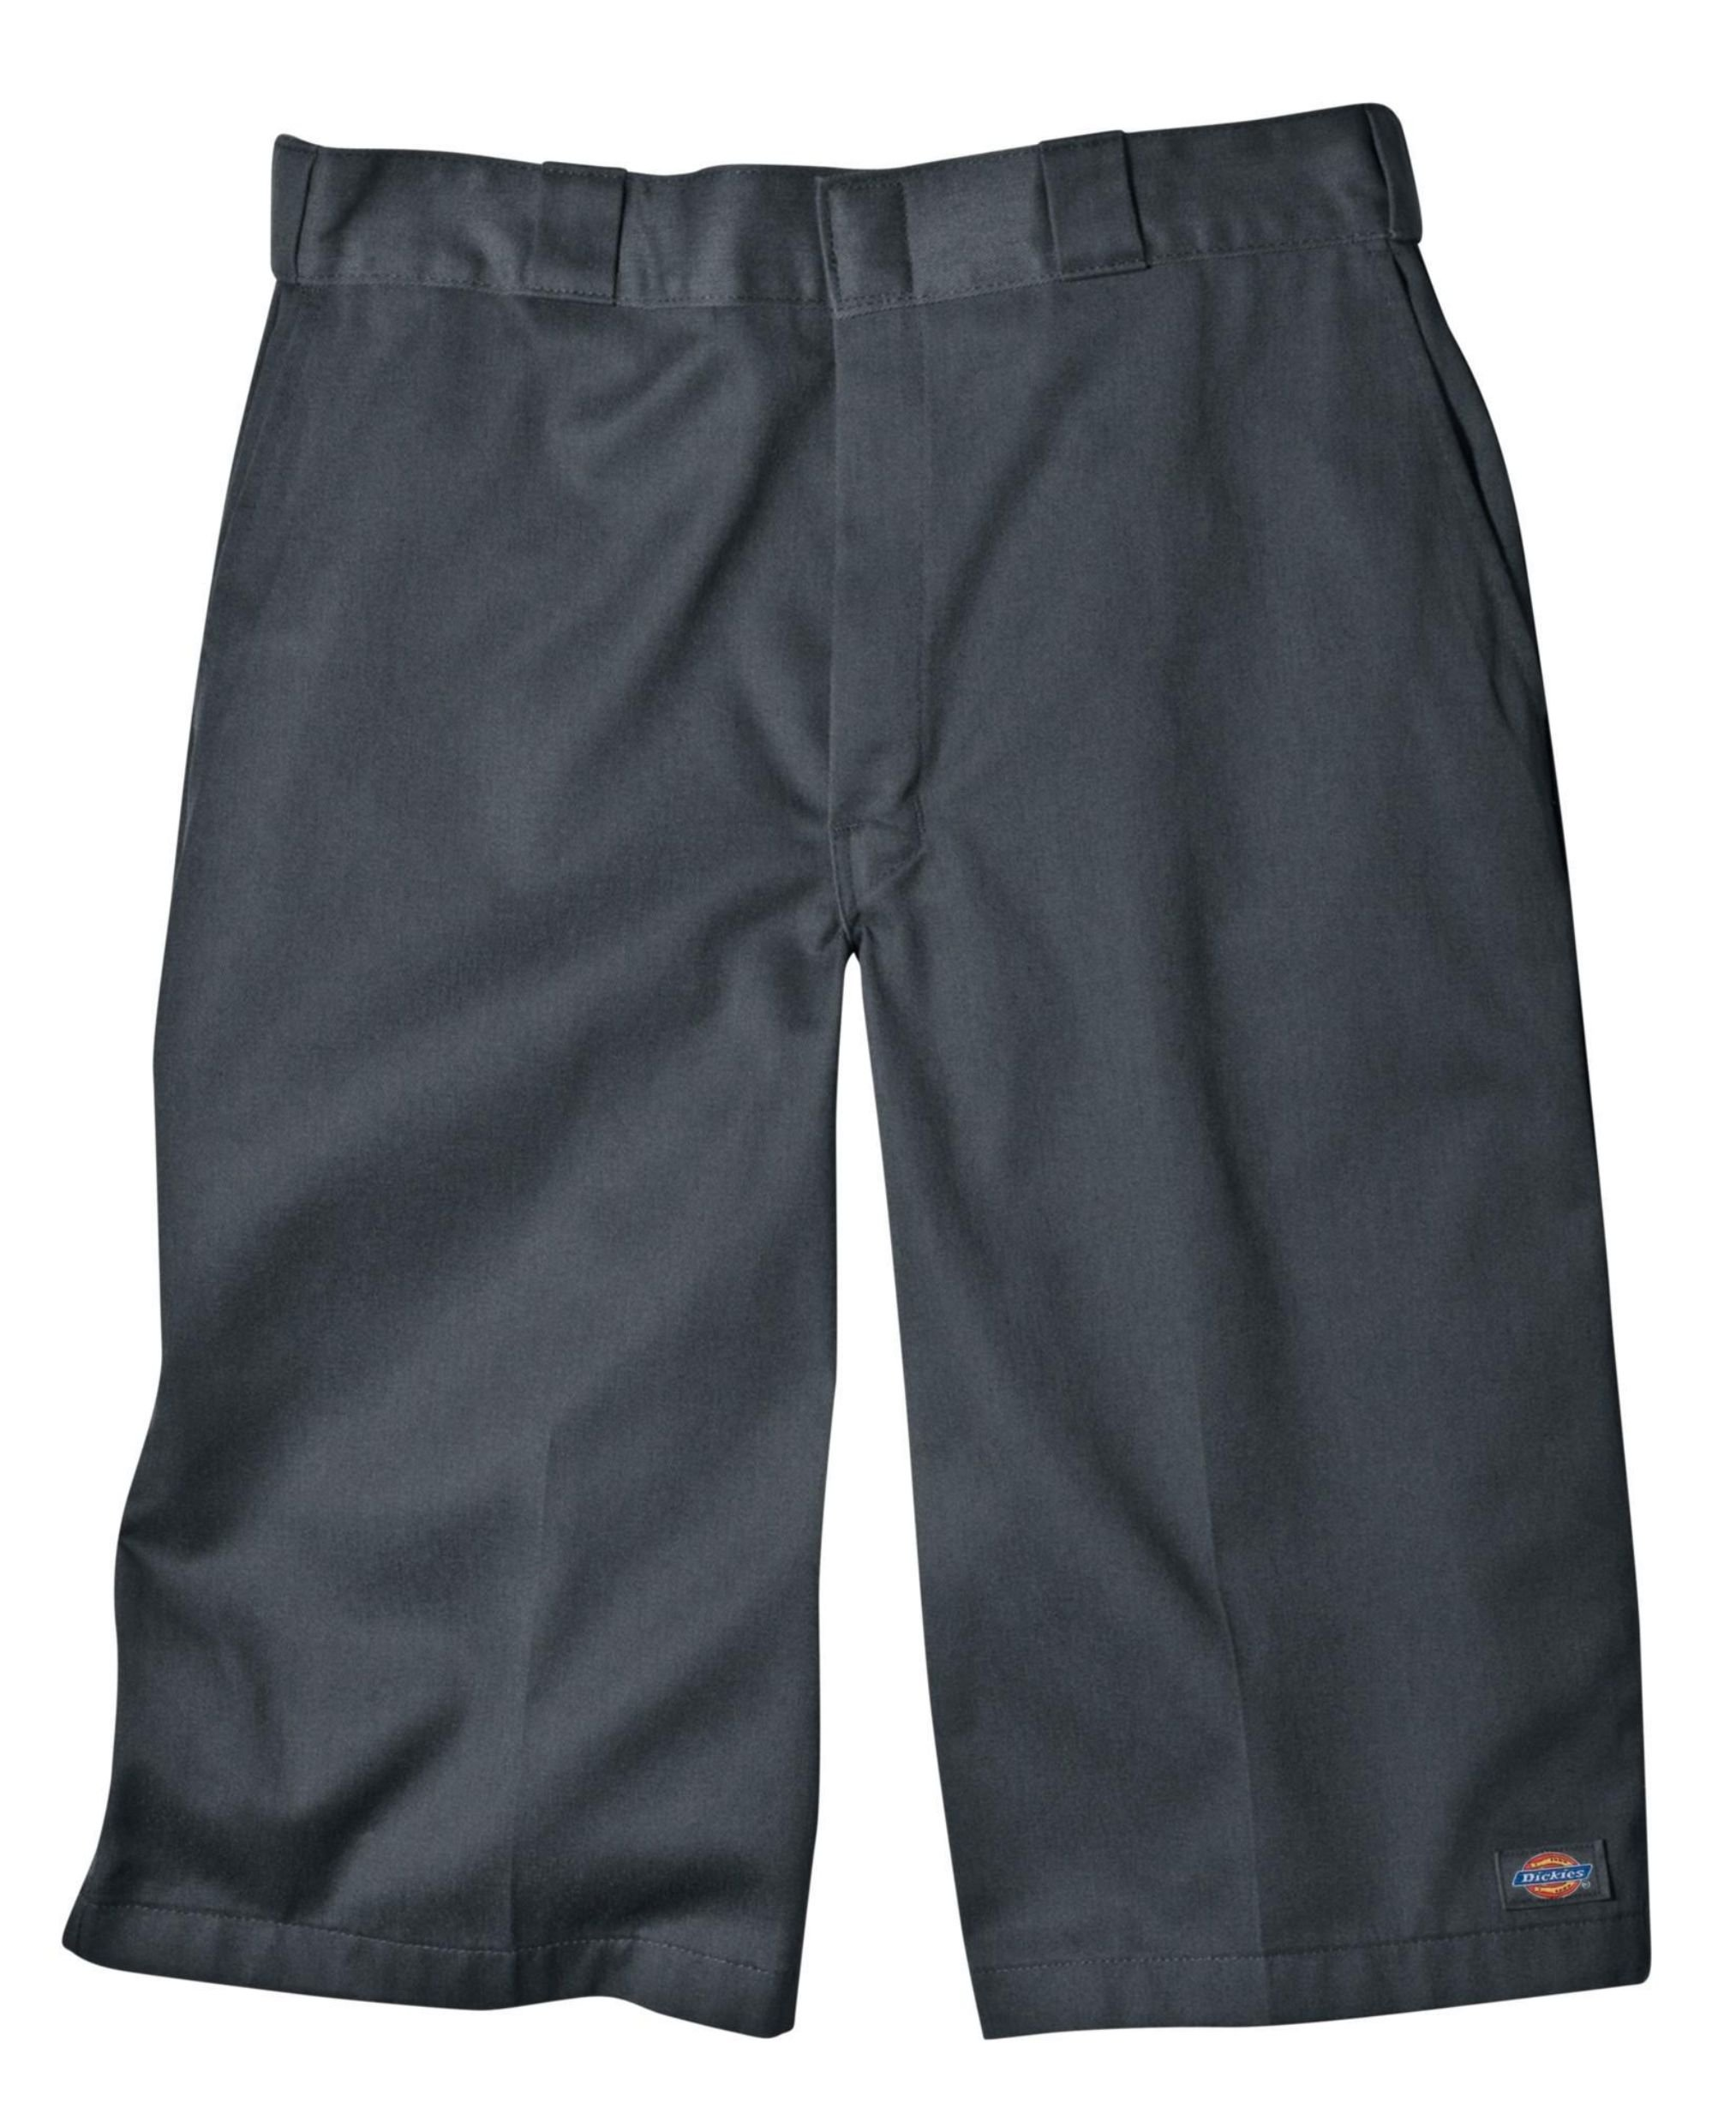 c7b4ccb91fc9 Dickies Men's 15 Inch Inseam Work - TiendaMIA.com